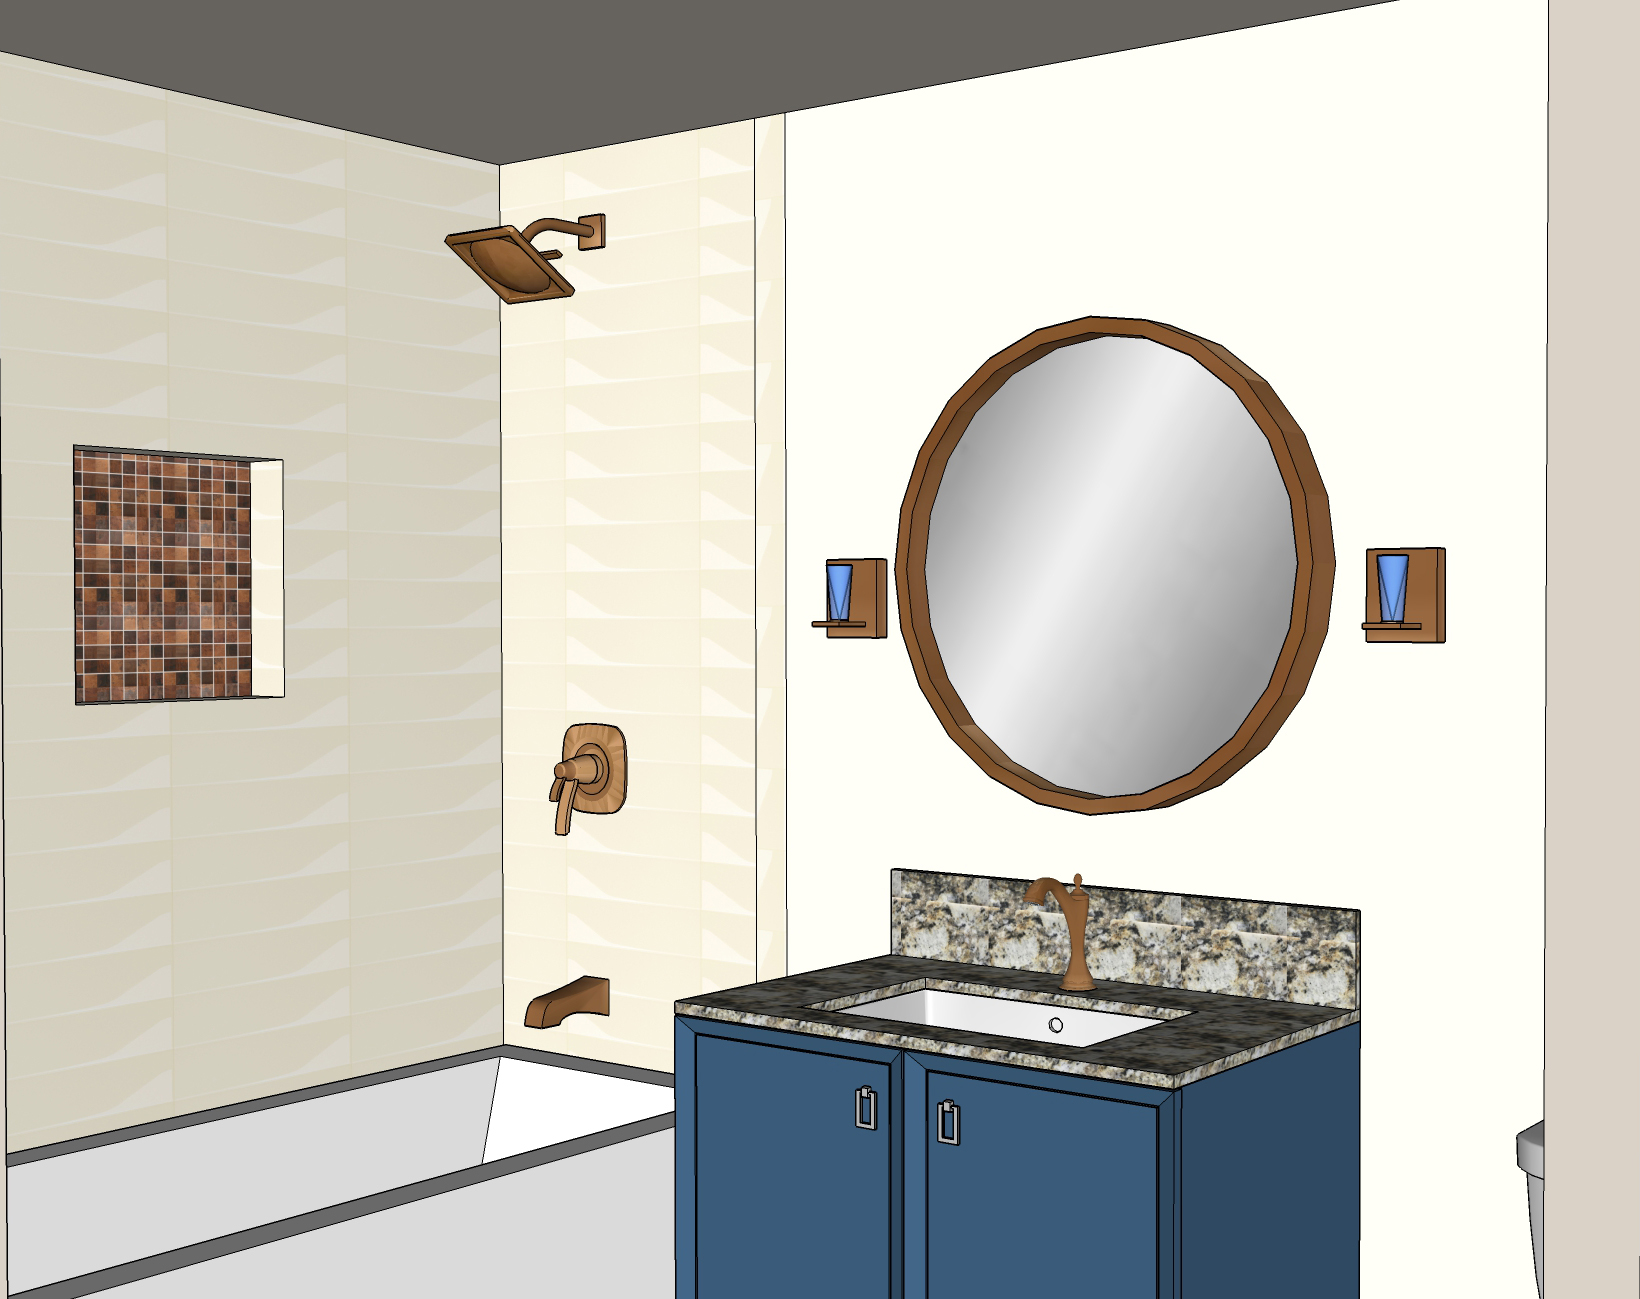 Earthy Bathroom, Bathroom Remodel, remodel, dmv interior designer, bowie maryland, washington dc, Blue vanity, 3d model